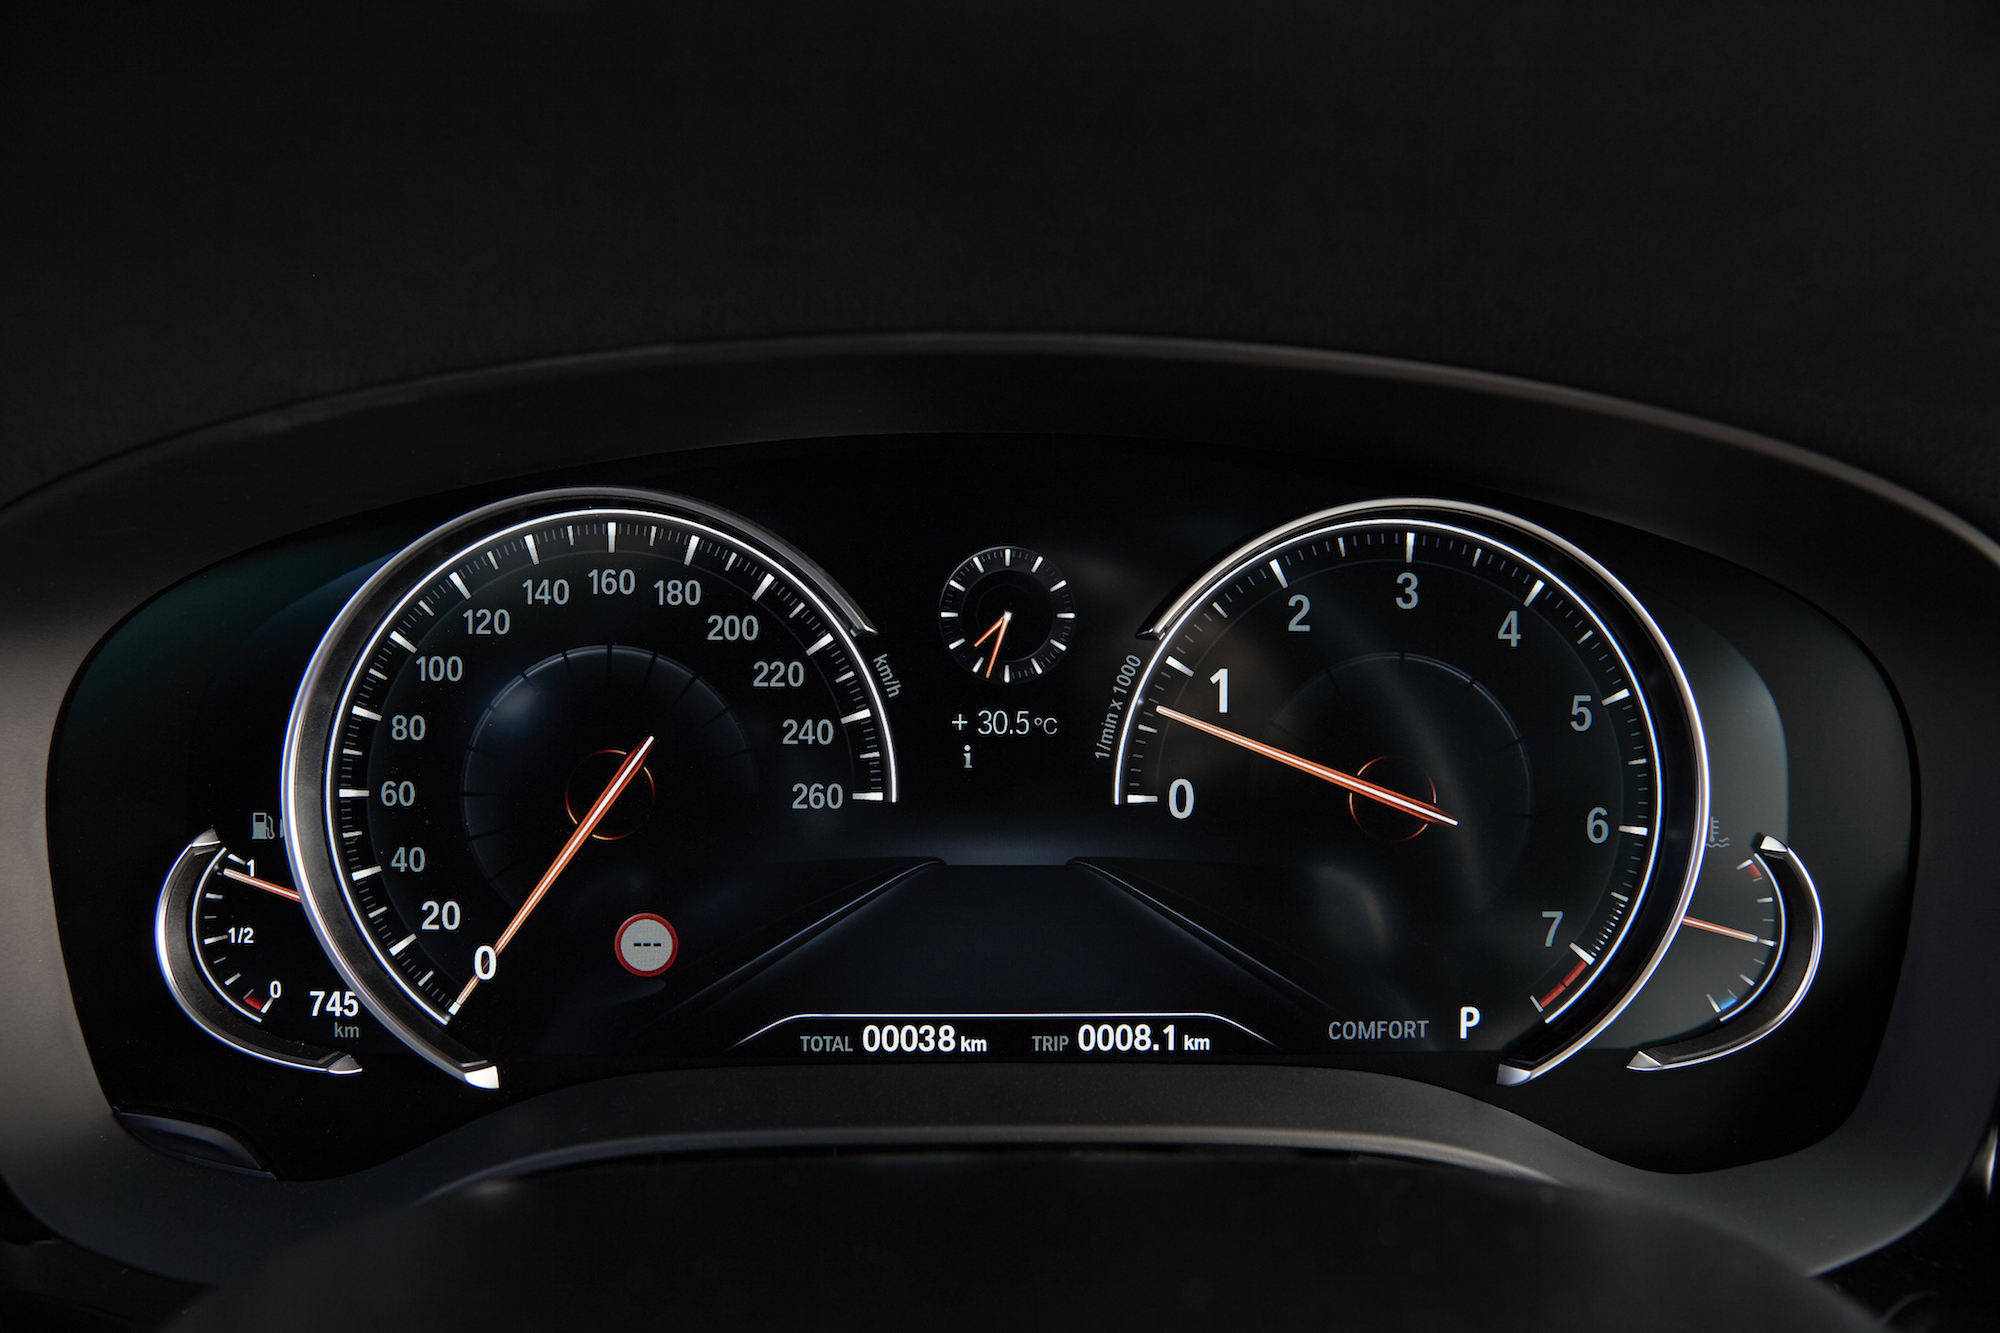 2017 BMW 540i XDrive Digital Gauges